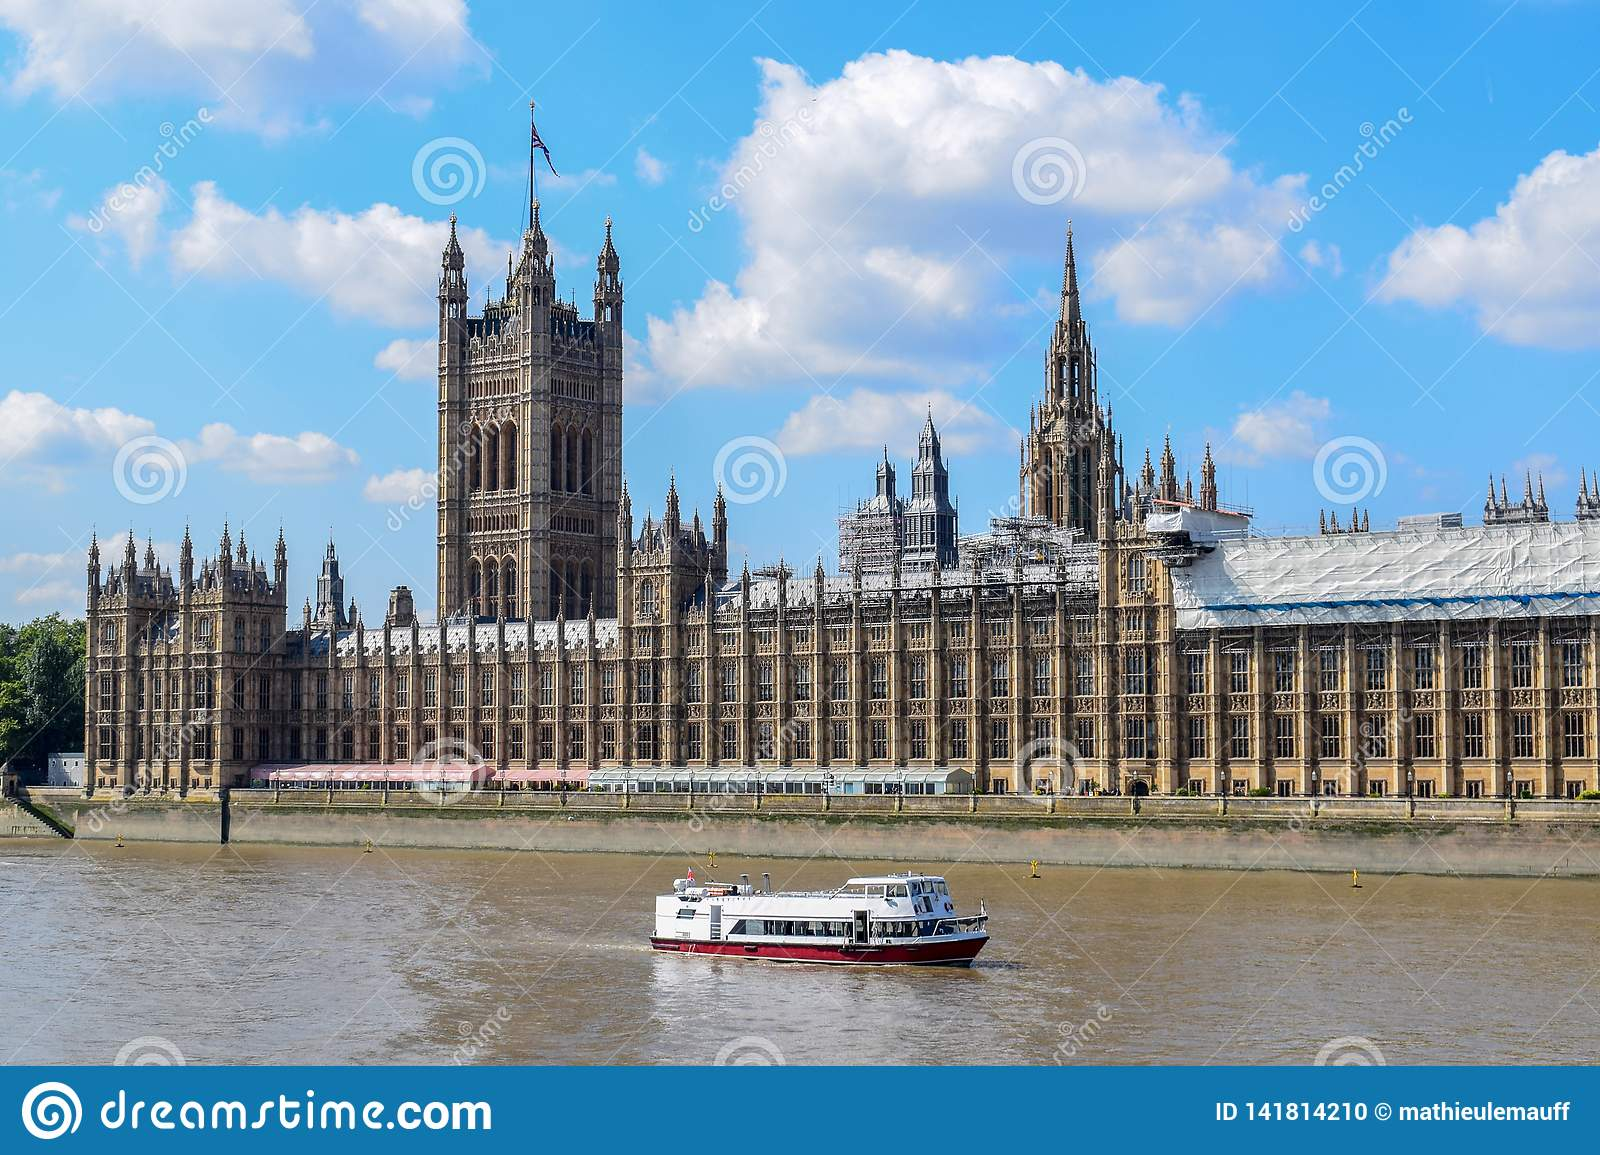 River Thames and Palace of Westminster & x28;Houses of Parliament